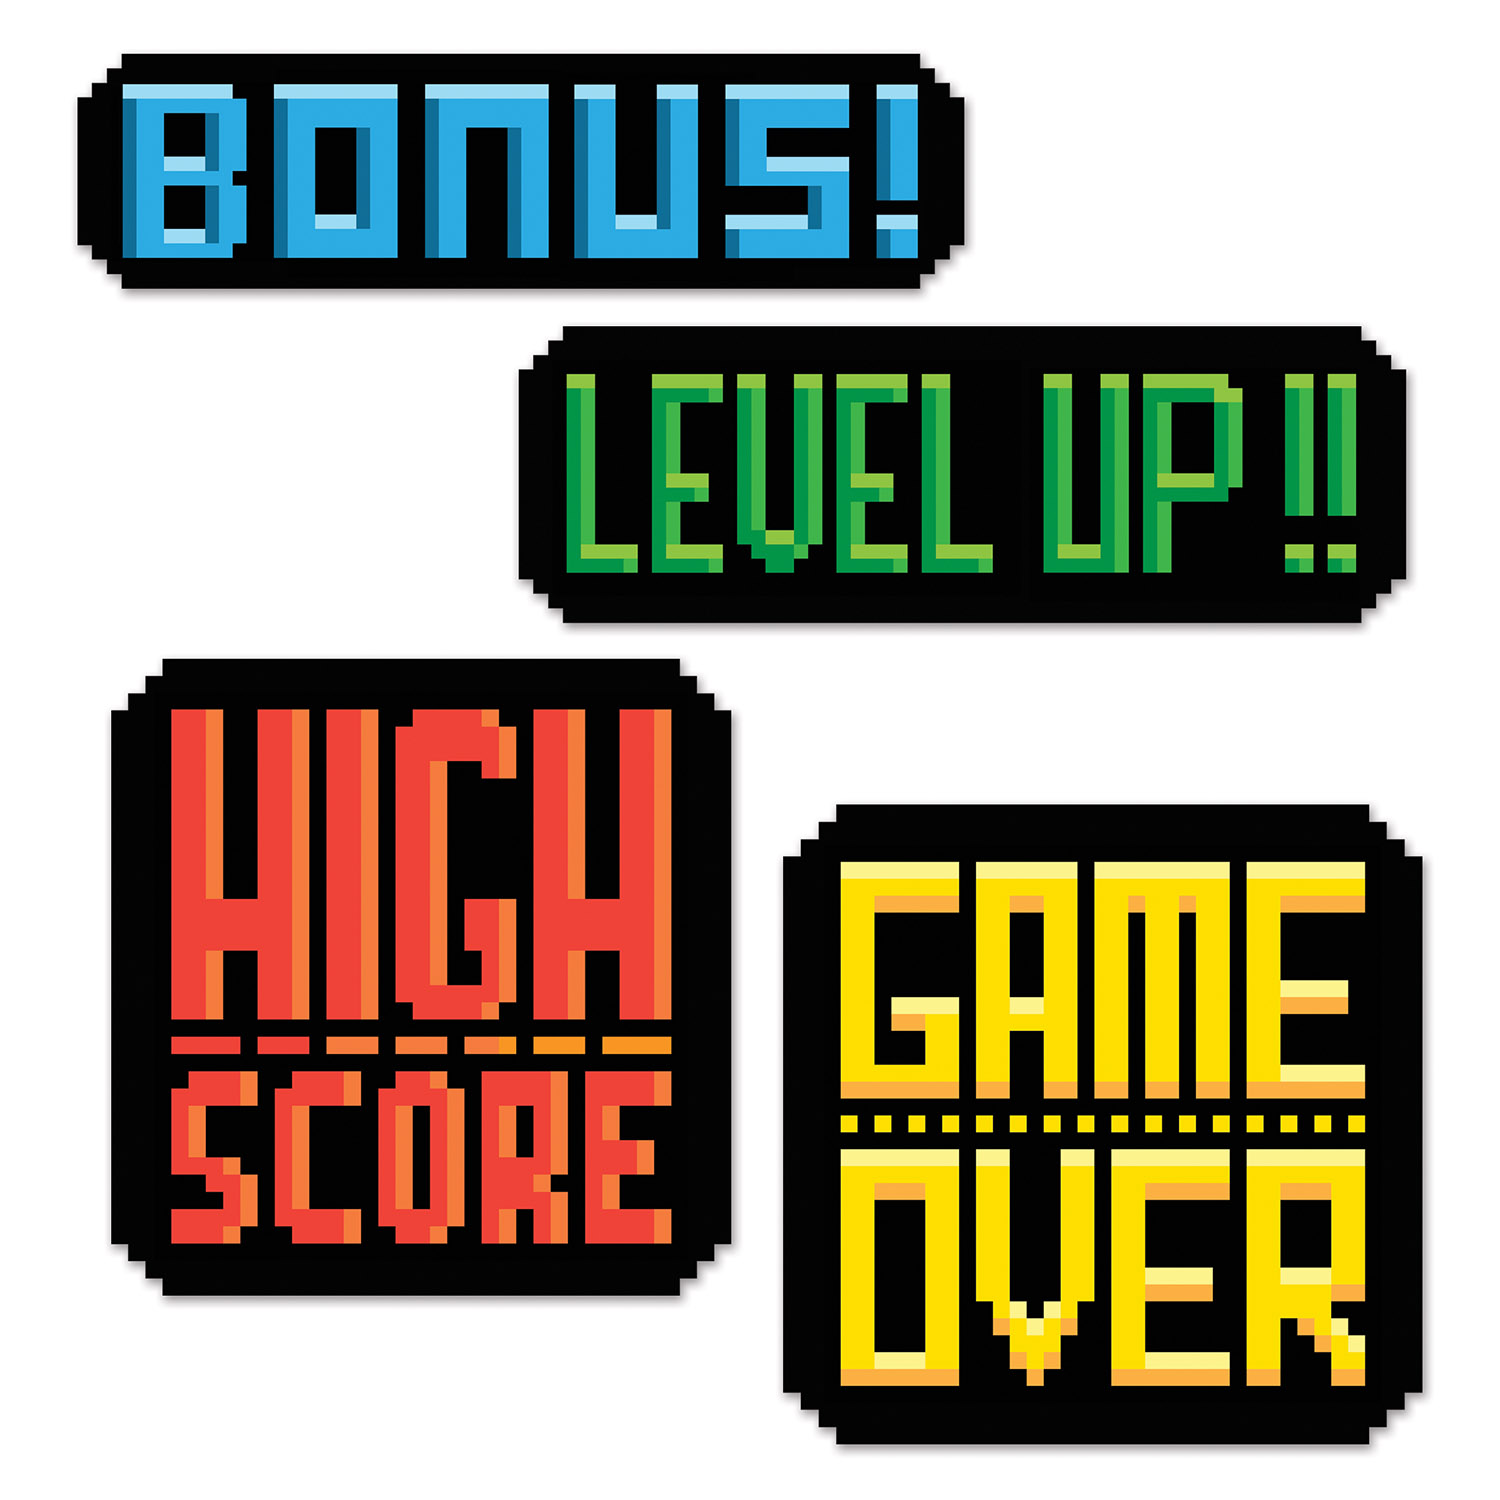 8-Bit Action Sign Cutouts (Pack of 48) 8-Bit Action Sign Cutouts, 80s, new years eve, decoration, gaming, 8-bit, game over, level up, wholesale, inexpensive, bulk